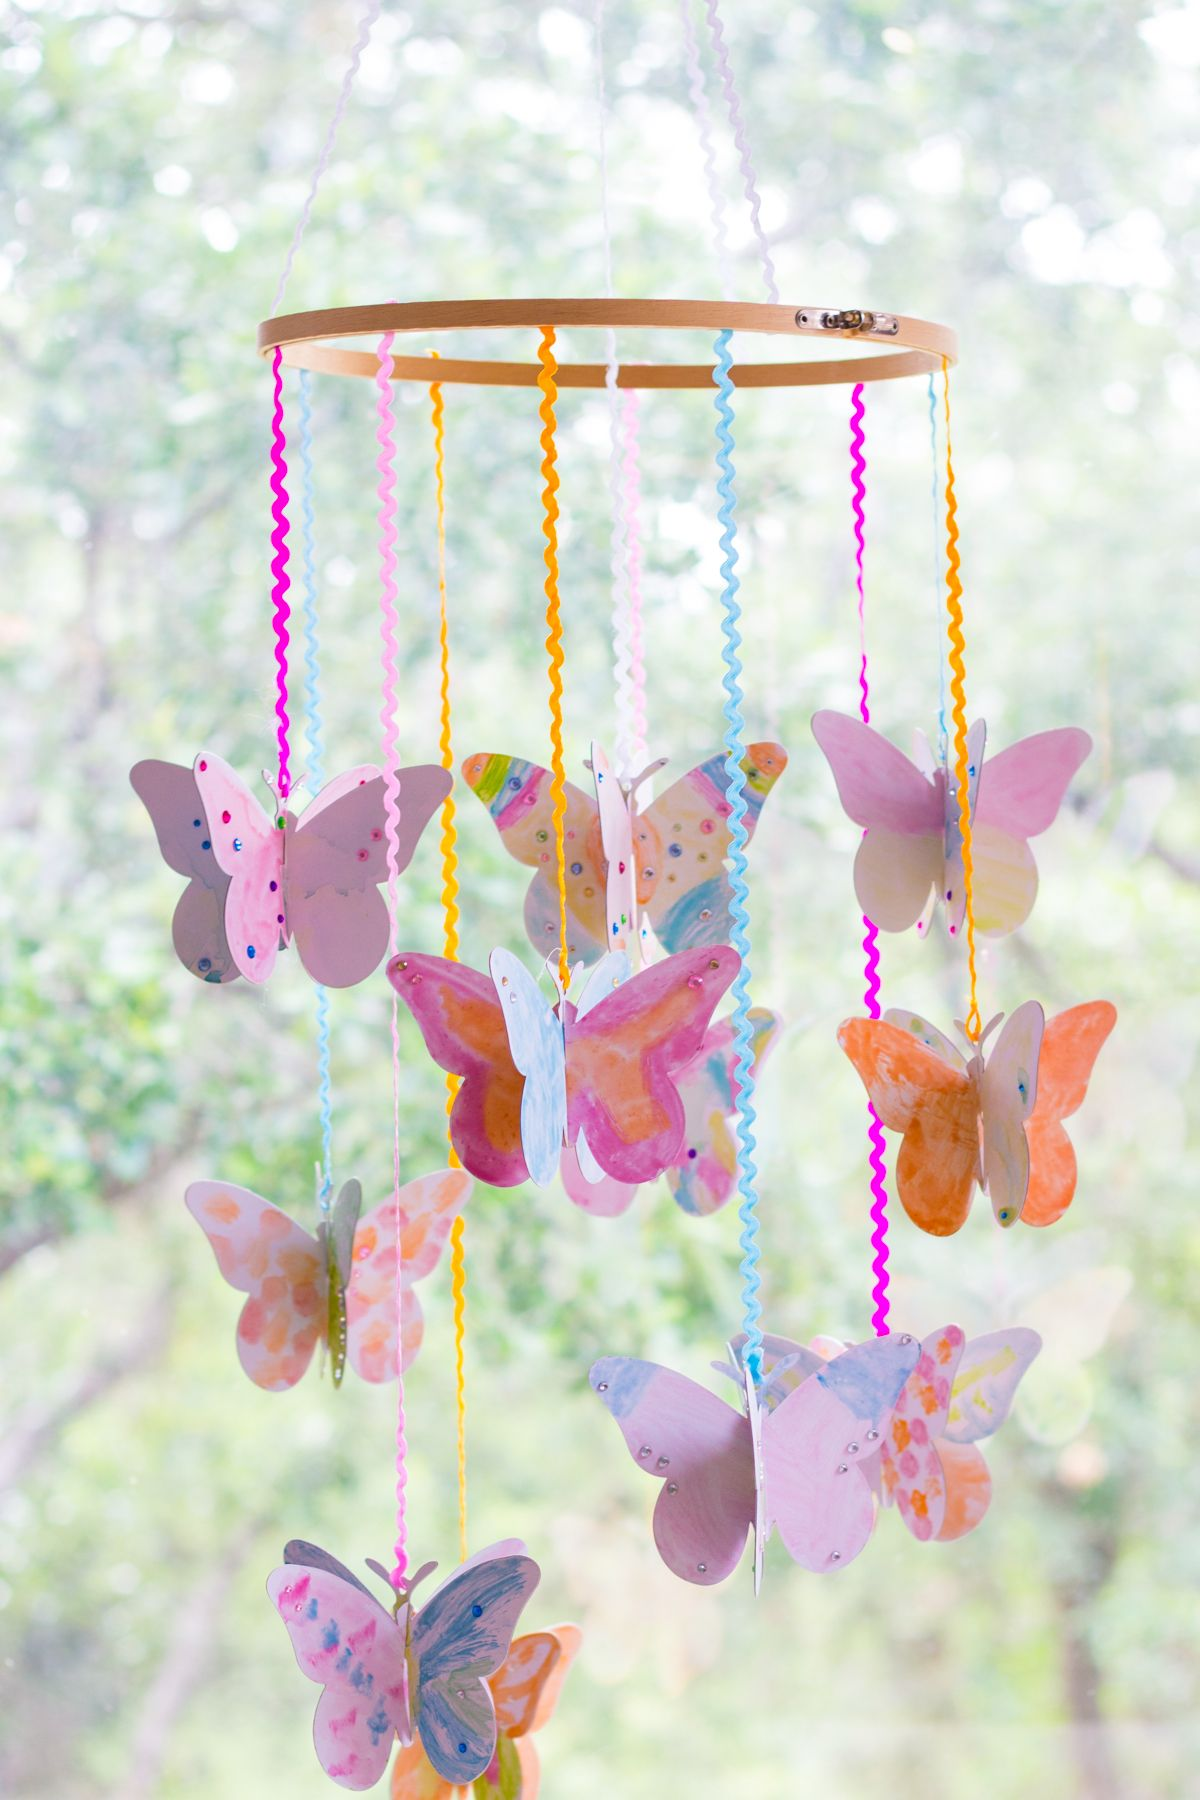 diy watercolor butterfly mobile diy crafts for kids fun crafts for kids crafts for kids. Black Bedroom Furniture Sets. Home Design Ideas